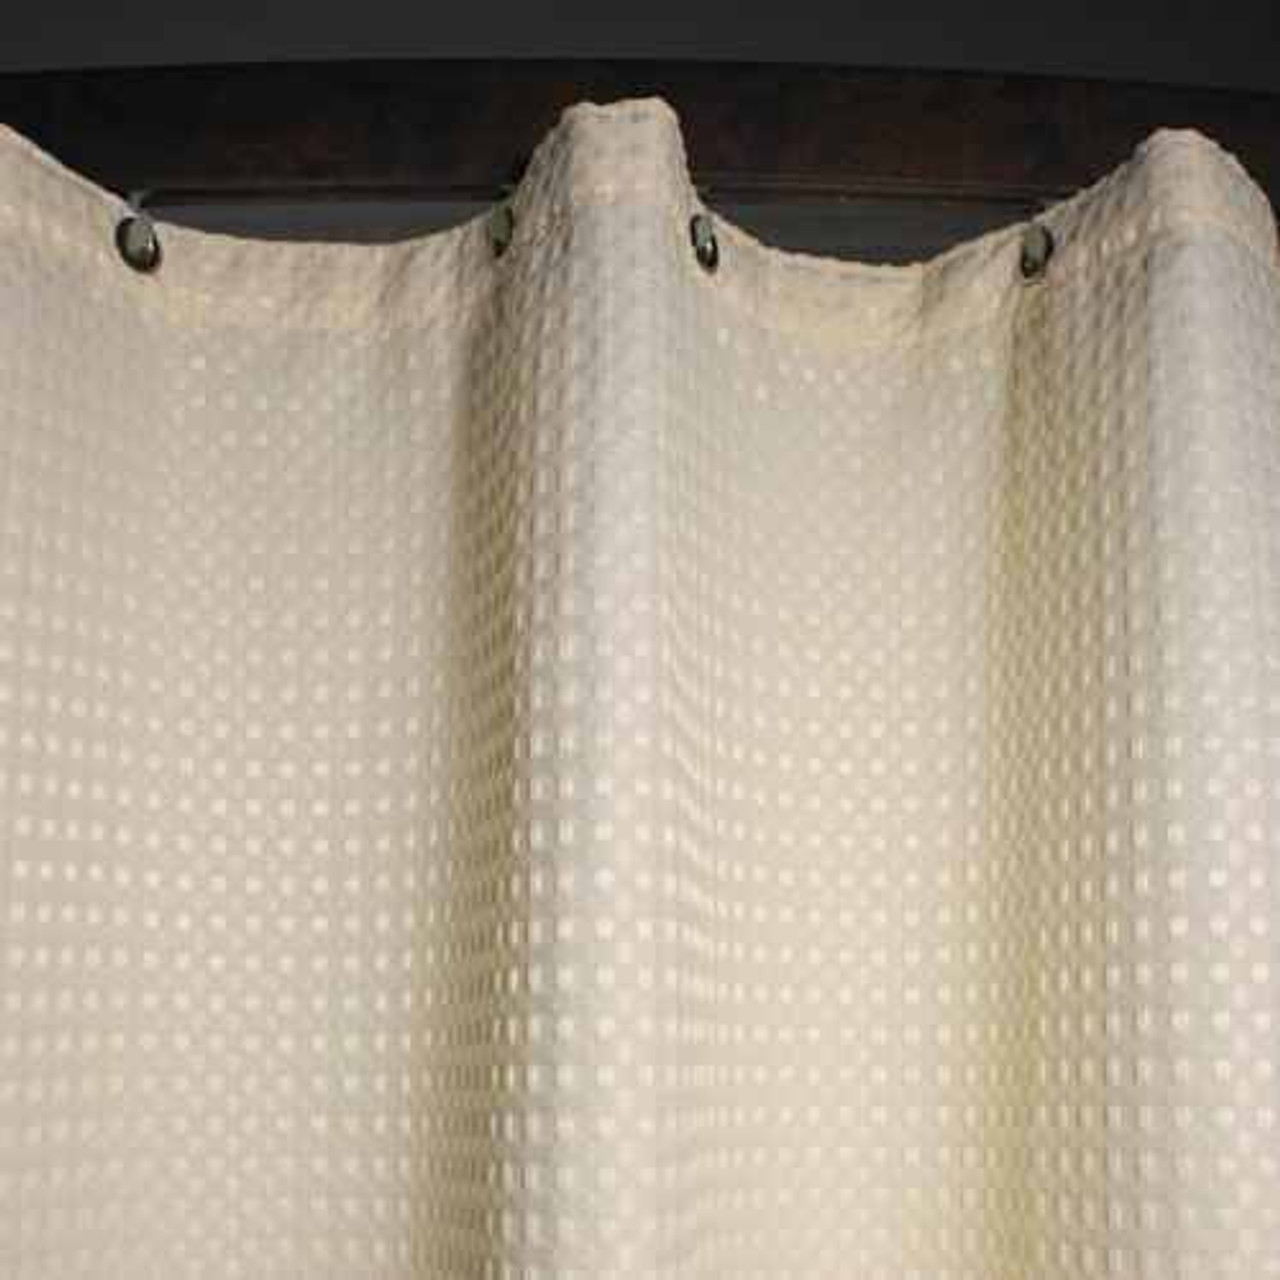 Kartri KARTRIor EXECUTIVEor WAFFLE FLAMEor RETARDANT POLYESTERor SHOWER CURTAIN W/ METAL GROMMETS PACK OF 6